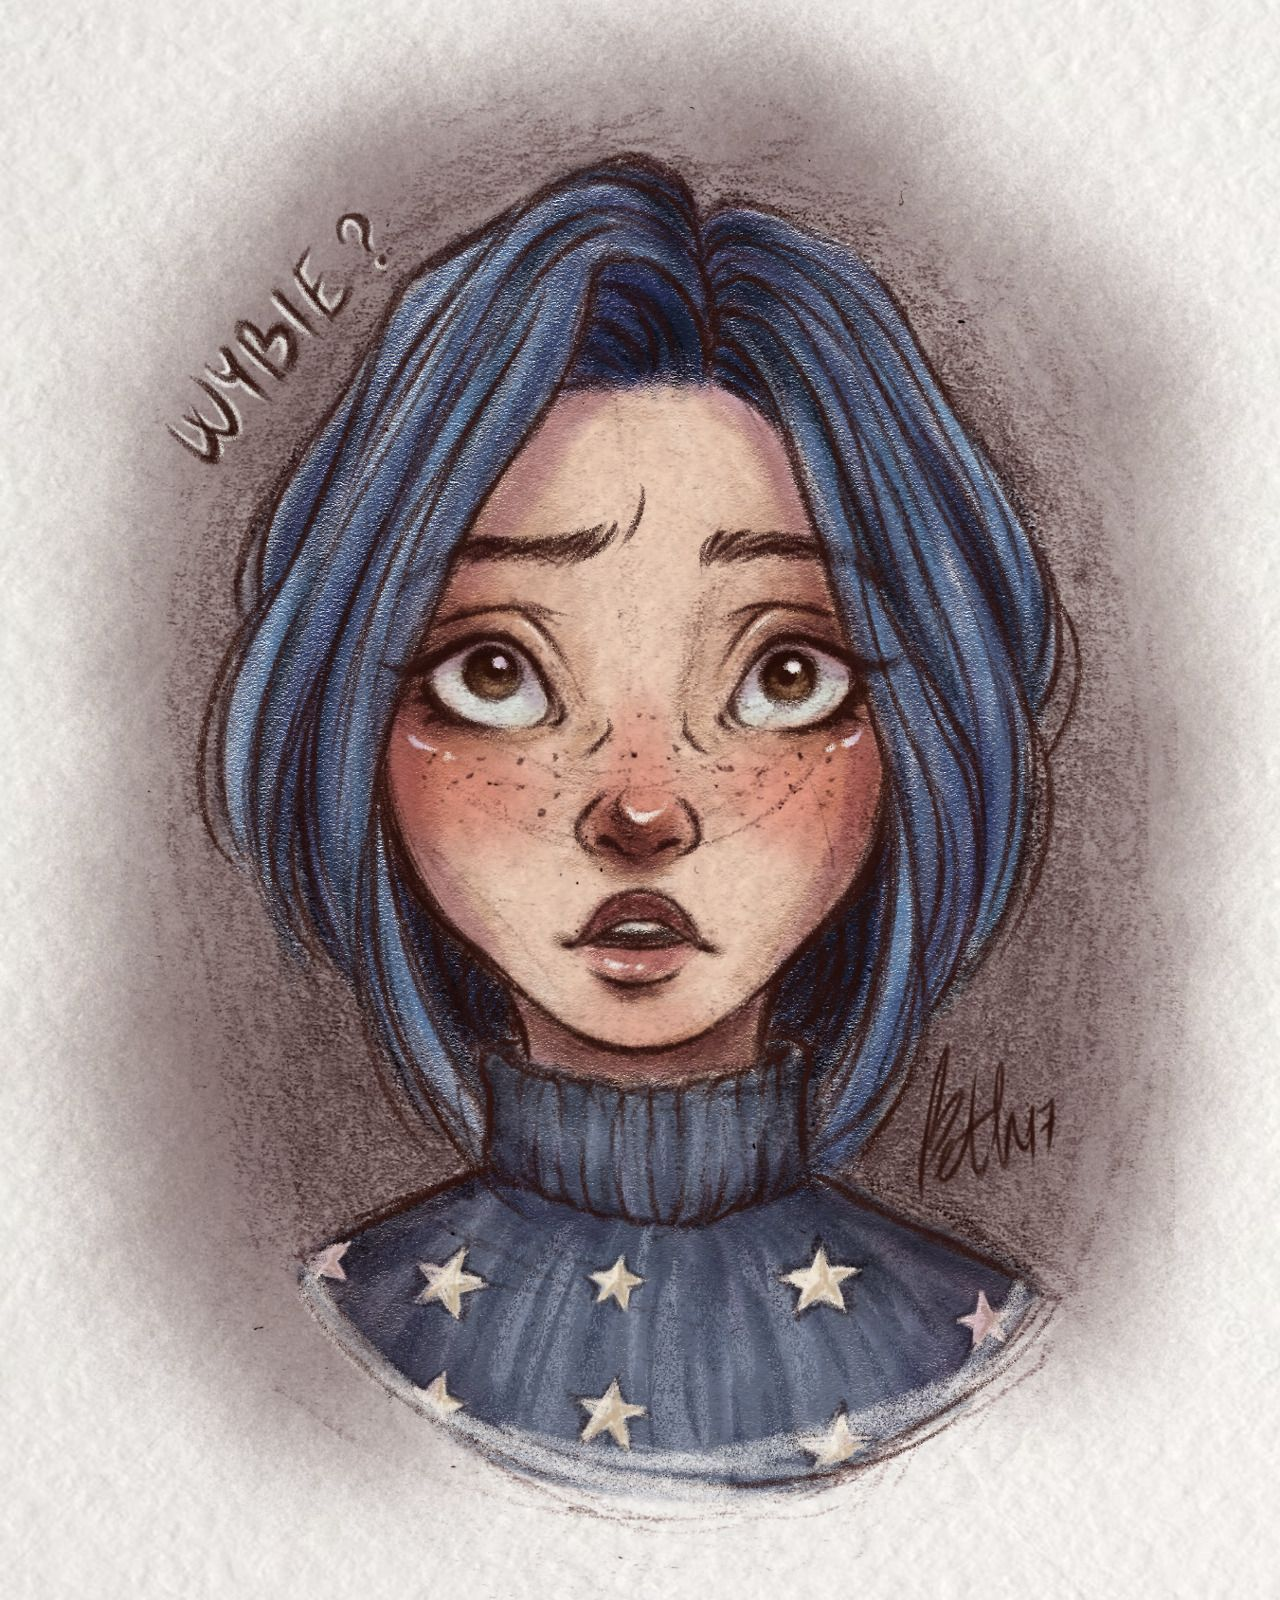 Pin By Pamela Gutierrez On Risovanie Devushek In 2020 Coraline Art Coraline Drawing Tim Burton Art